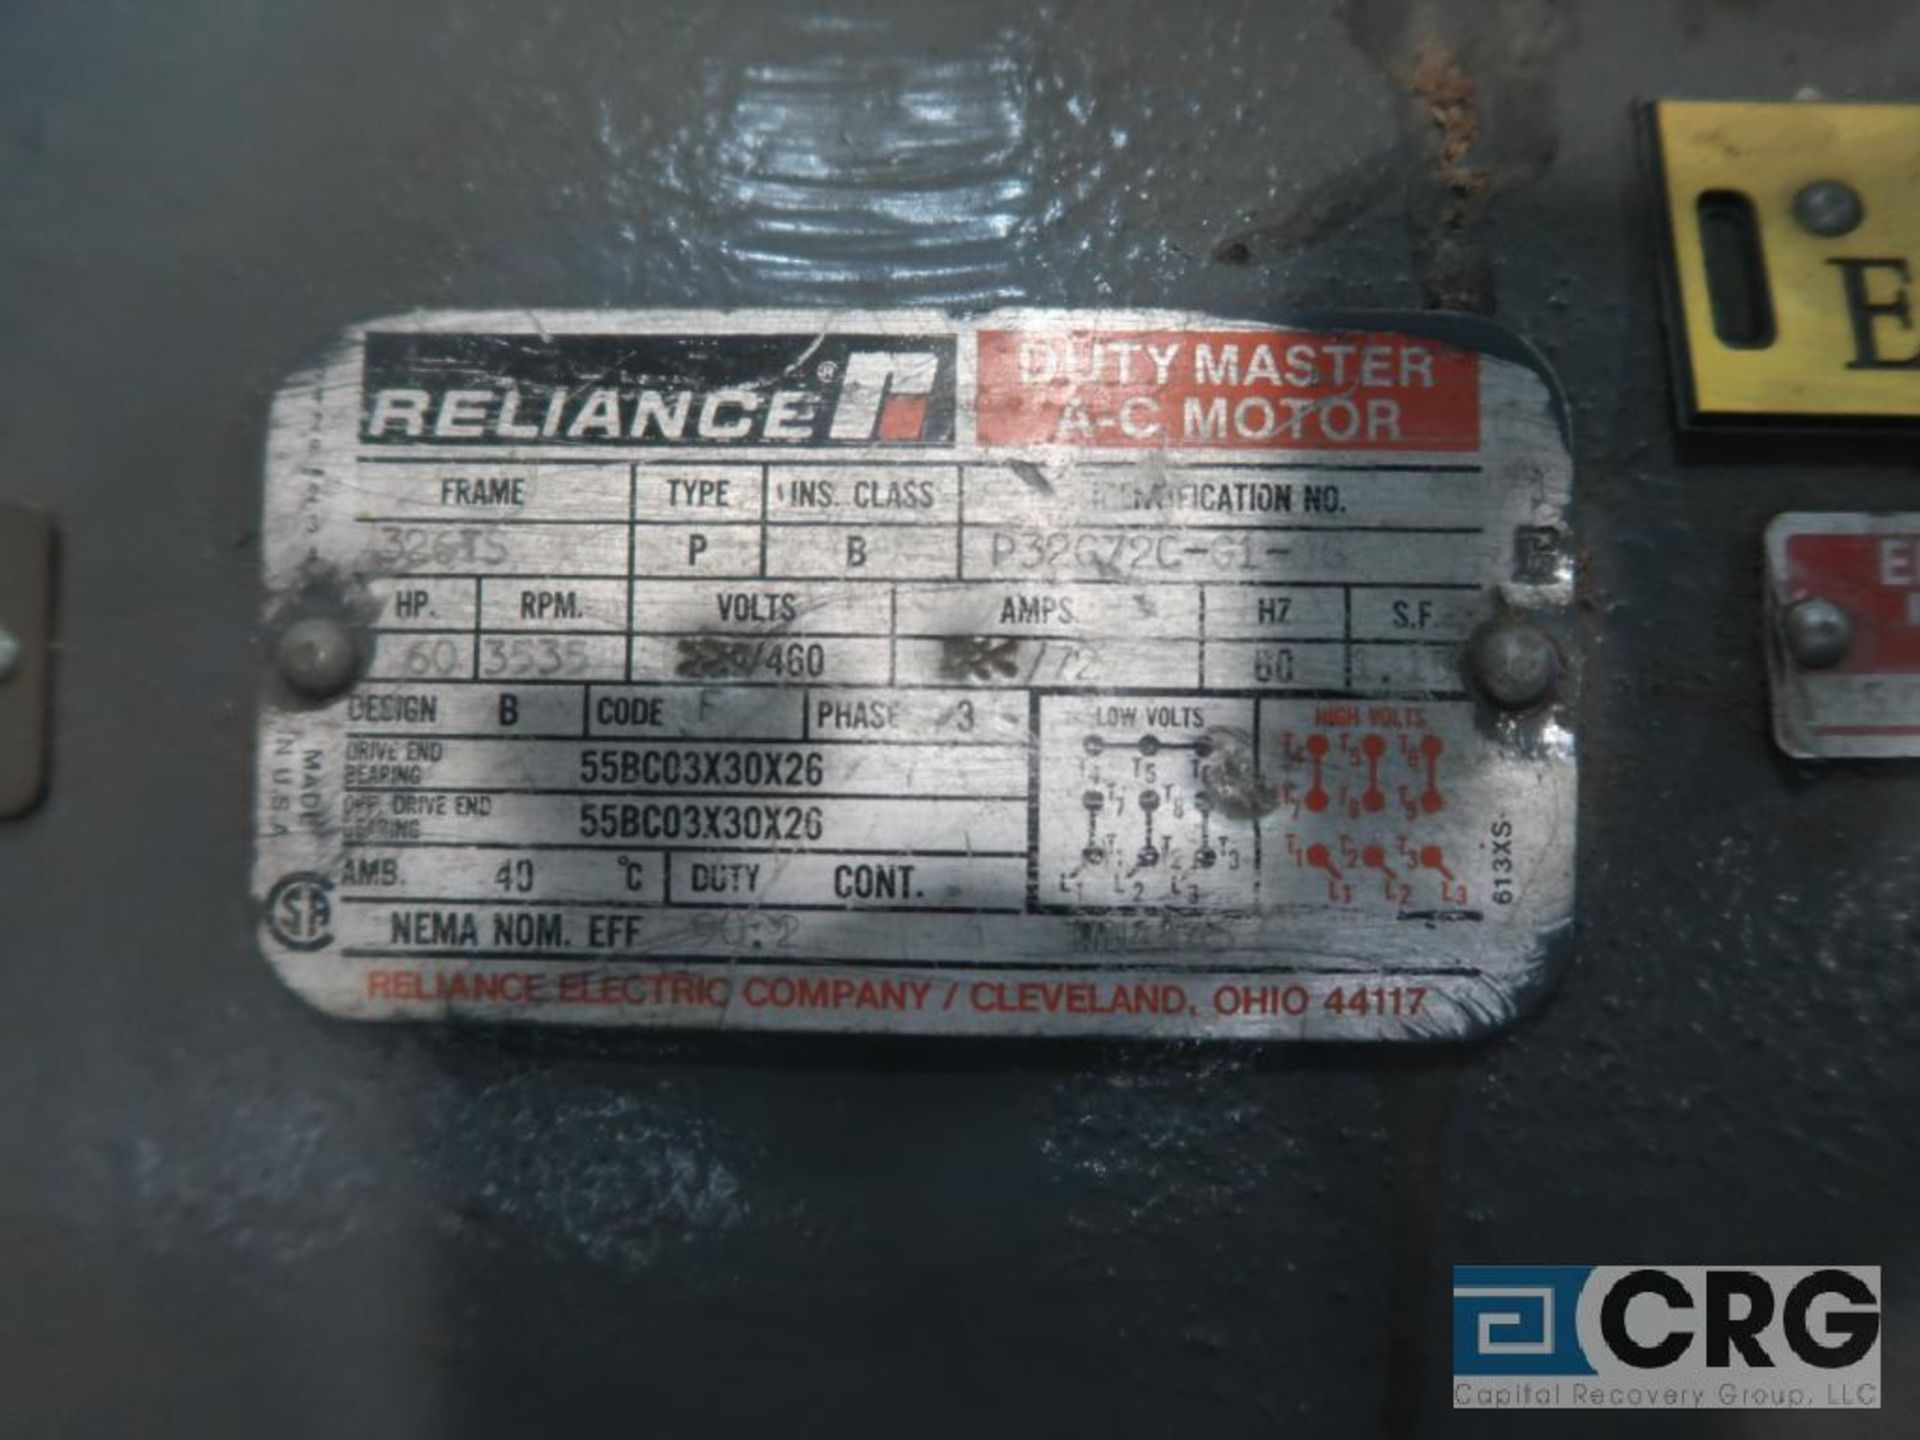 Reliance Duty Master A-C motor XE Energy Efficient, 75 HP, 3,560 RPMs, 460 volt, 3 ph., 365TS - Image 2 of 2